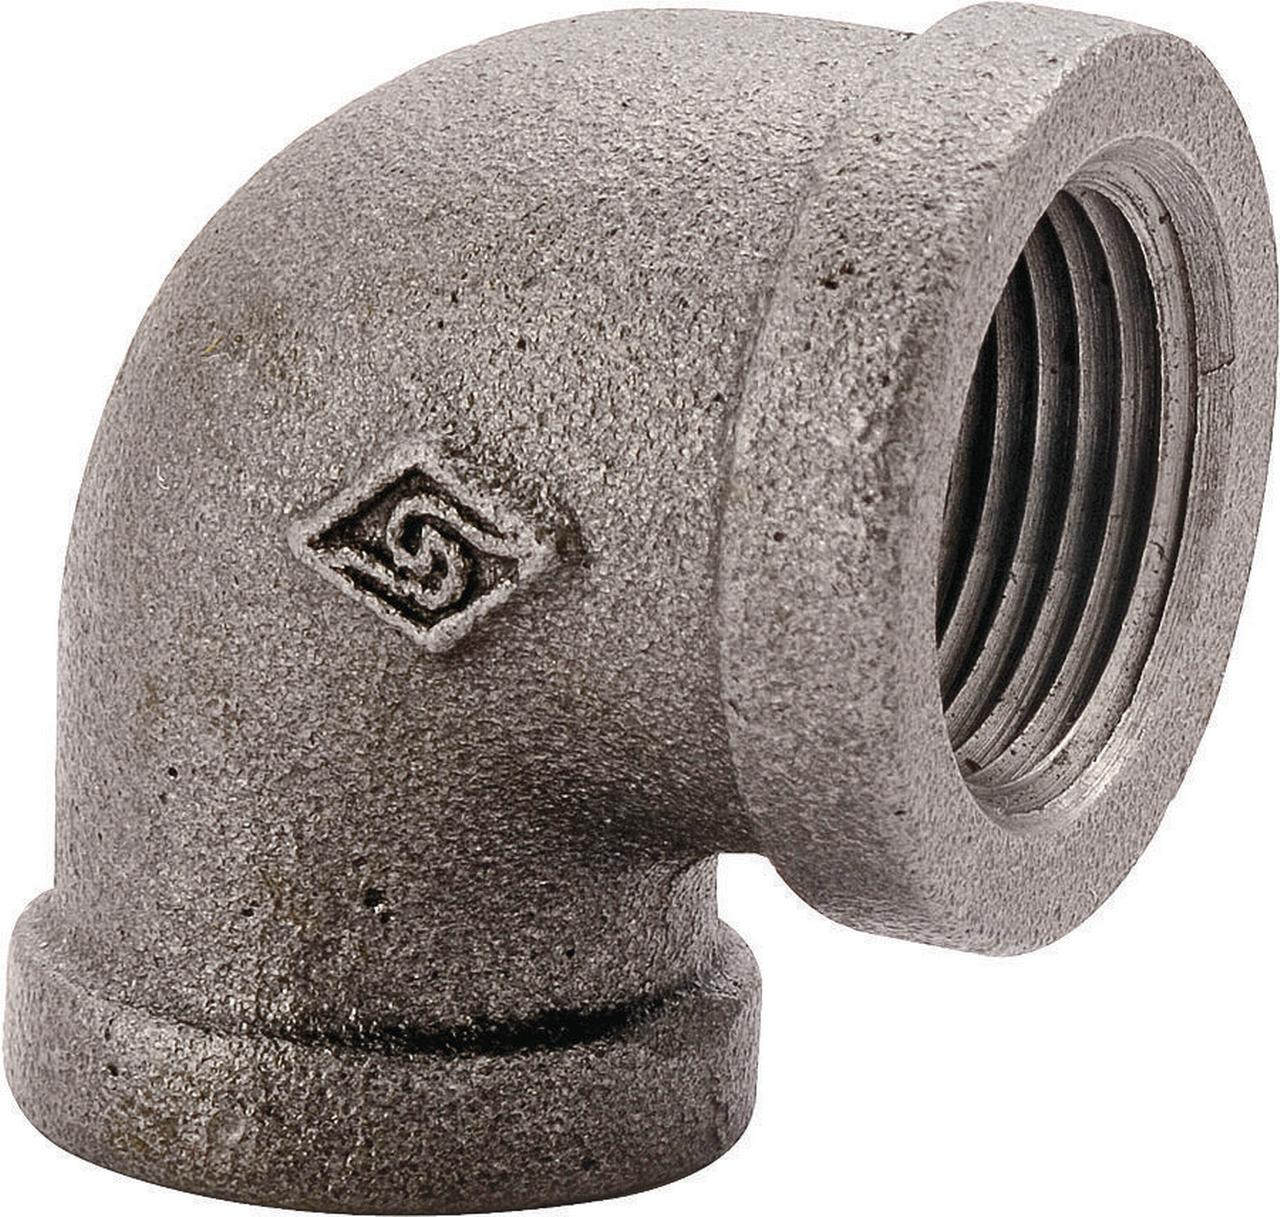 WORLDWIDE SOURCING 2A-2B Pipe Elbow 90 deg 2 in Threaded Malleable Iron